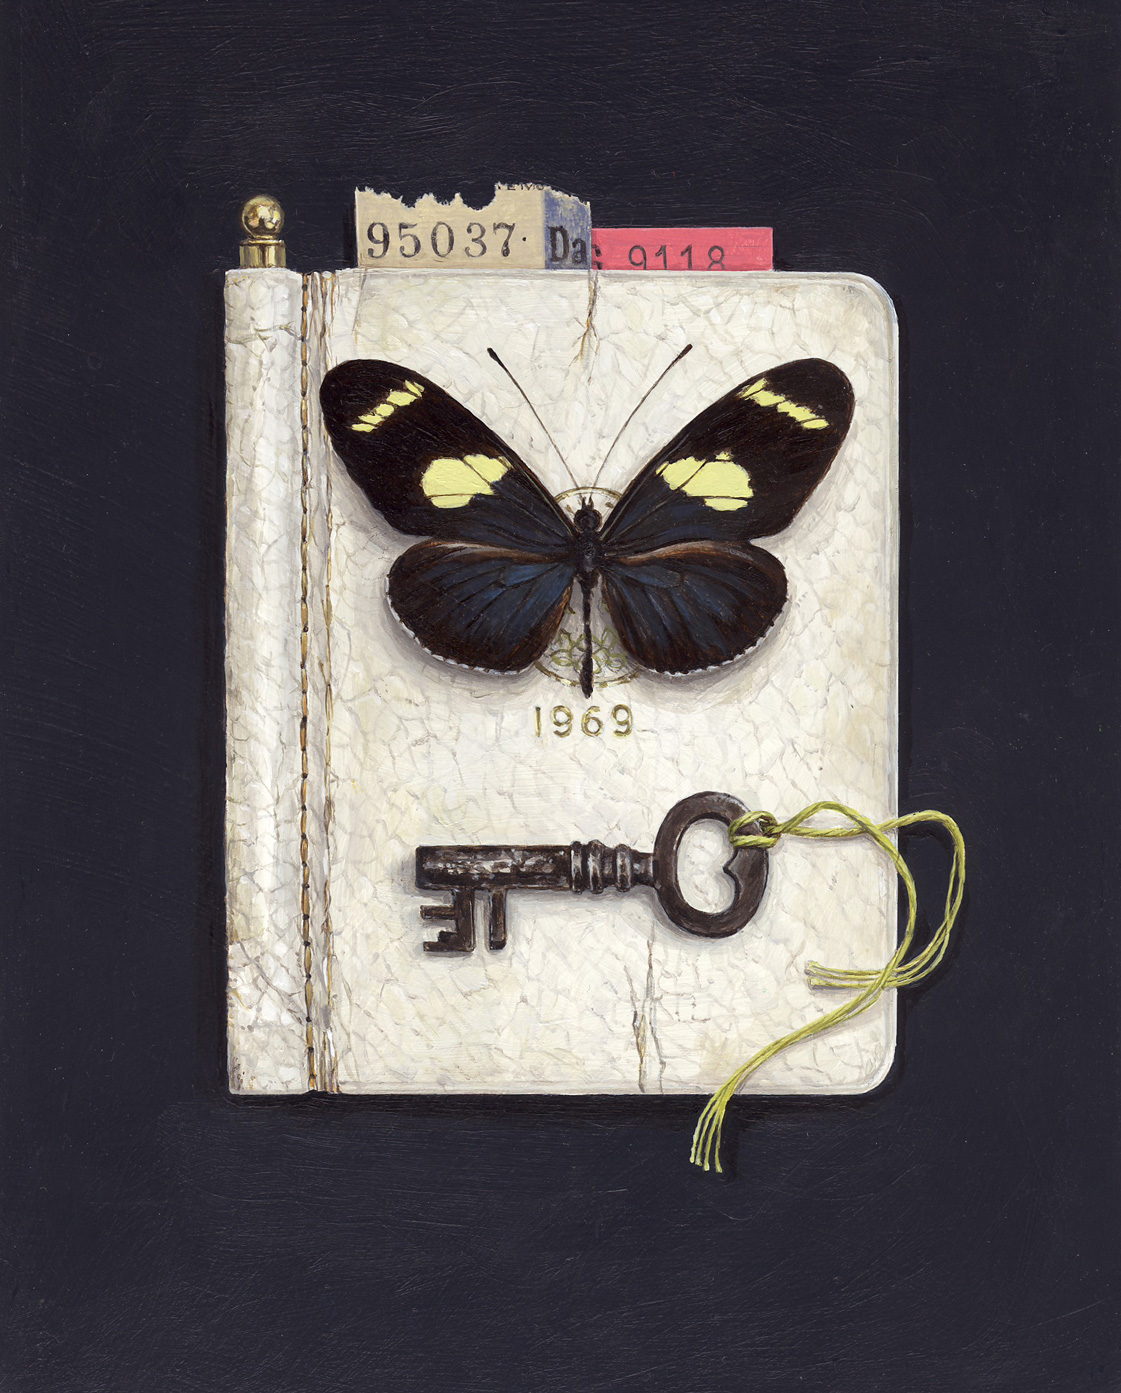 1969 diary with butterfly